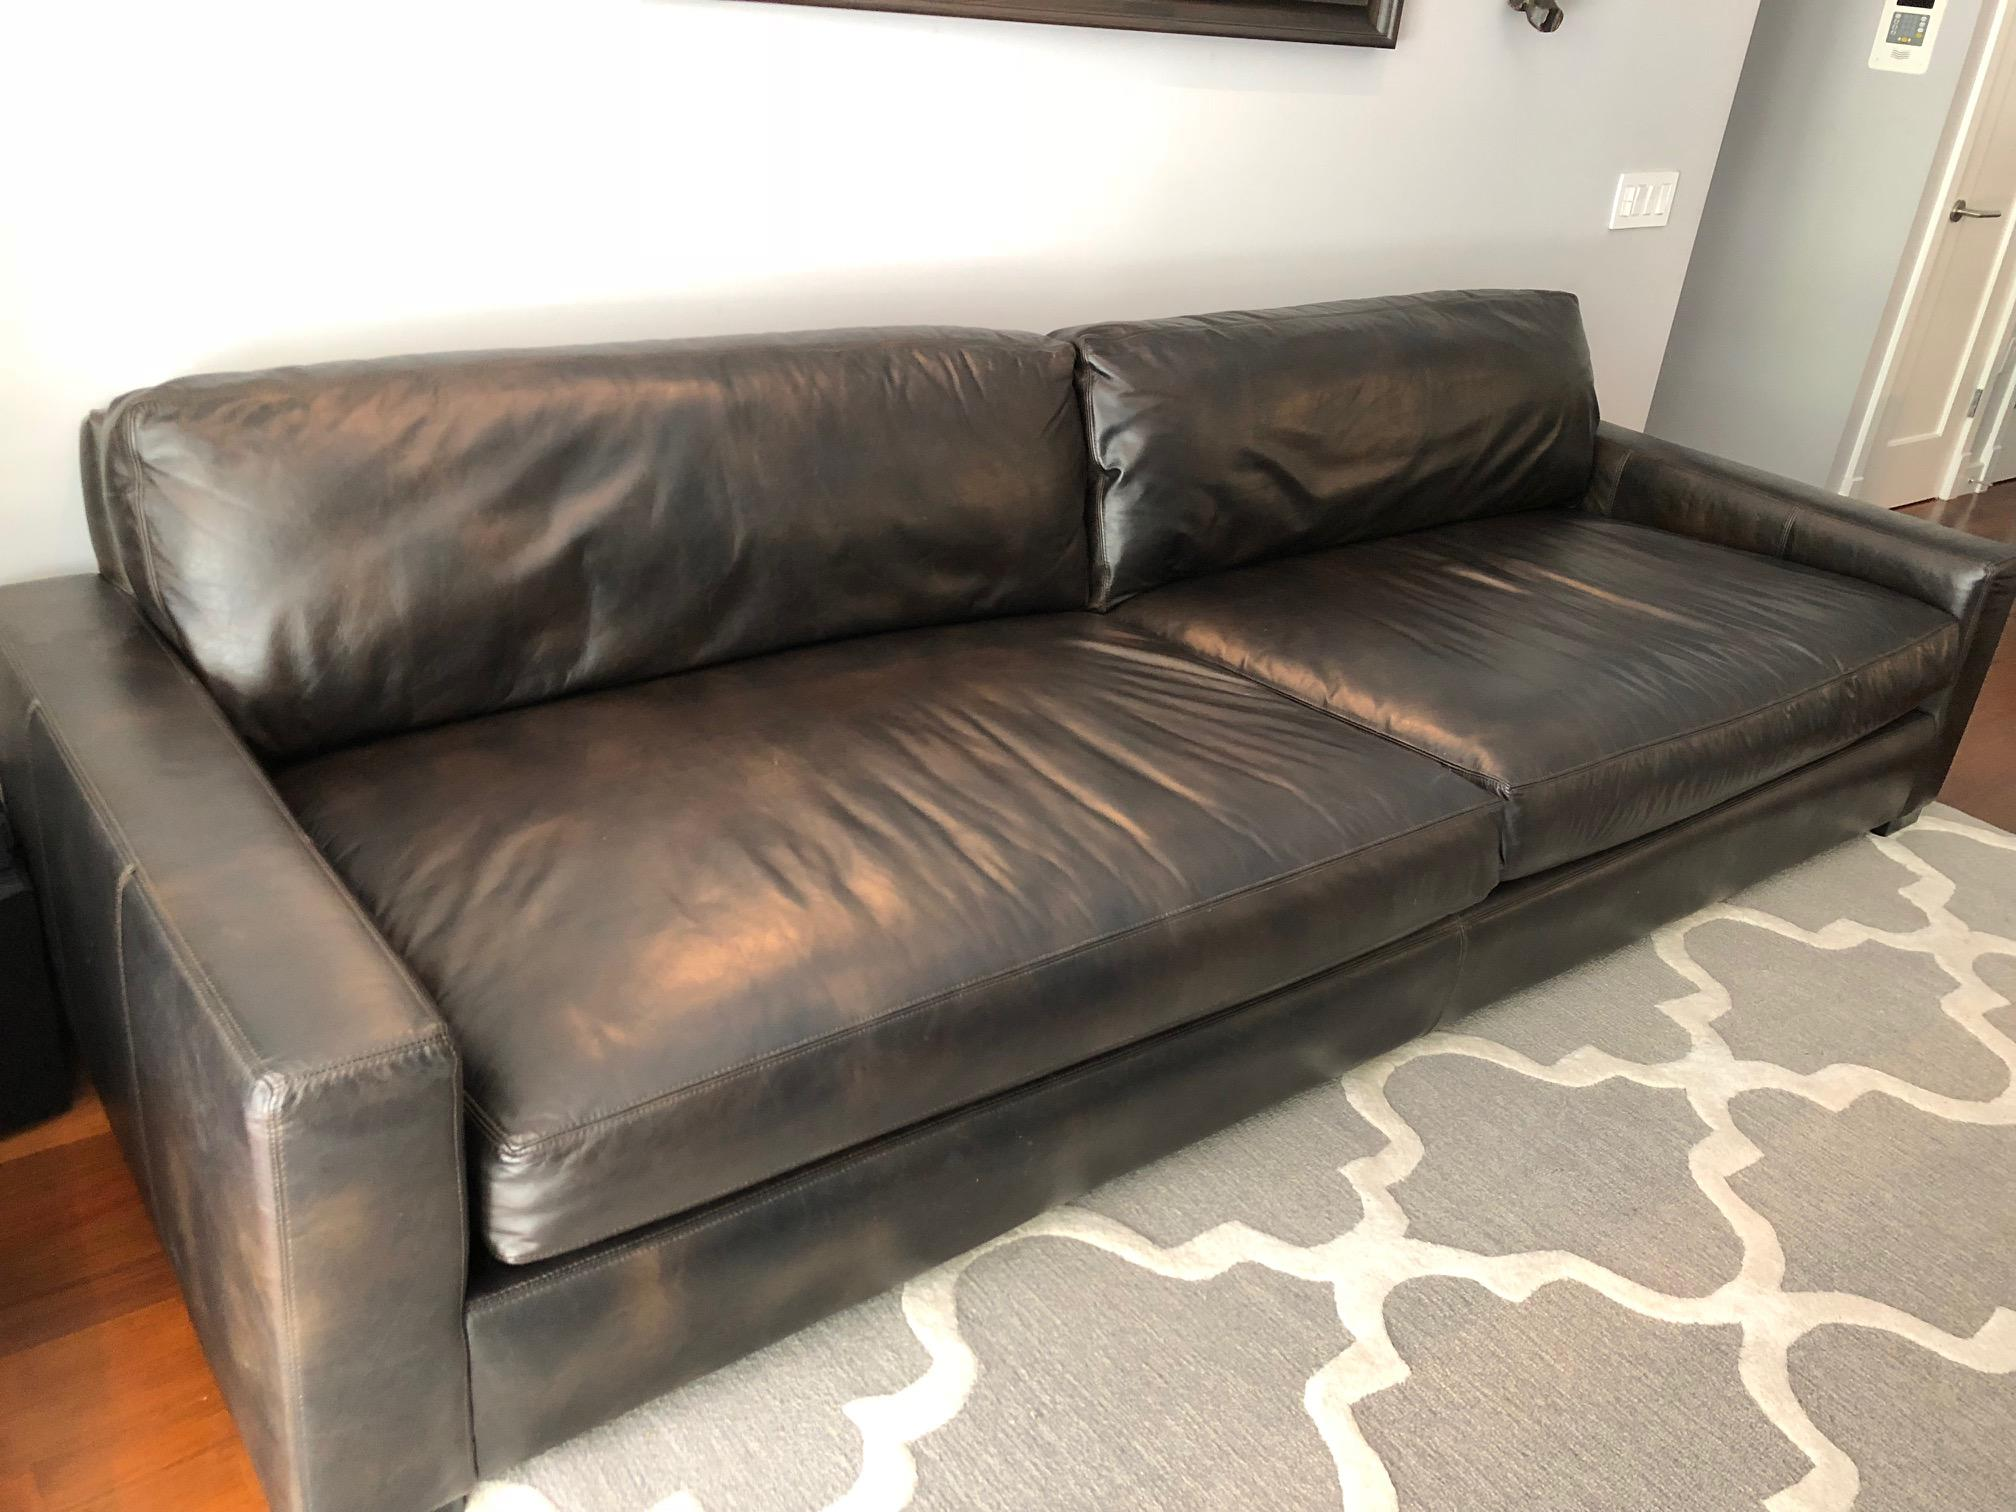 Charmant Contemporary Restoration Hardware Maxwell Leather Sofa For Sale   Image 3  Of 4